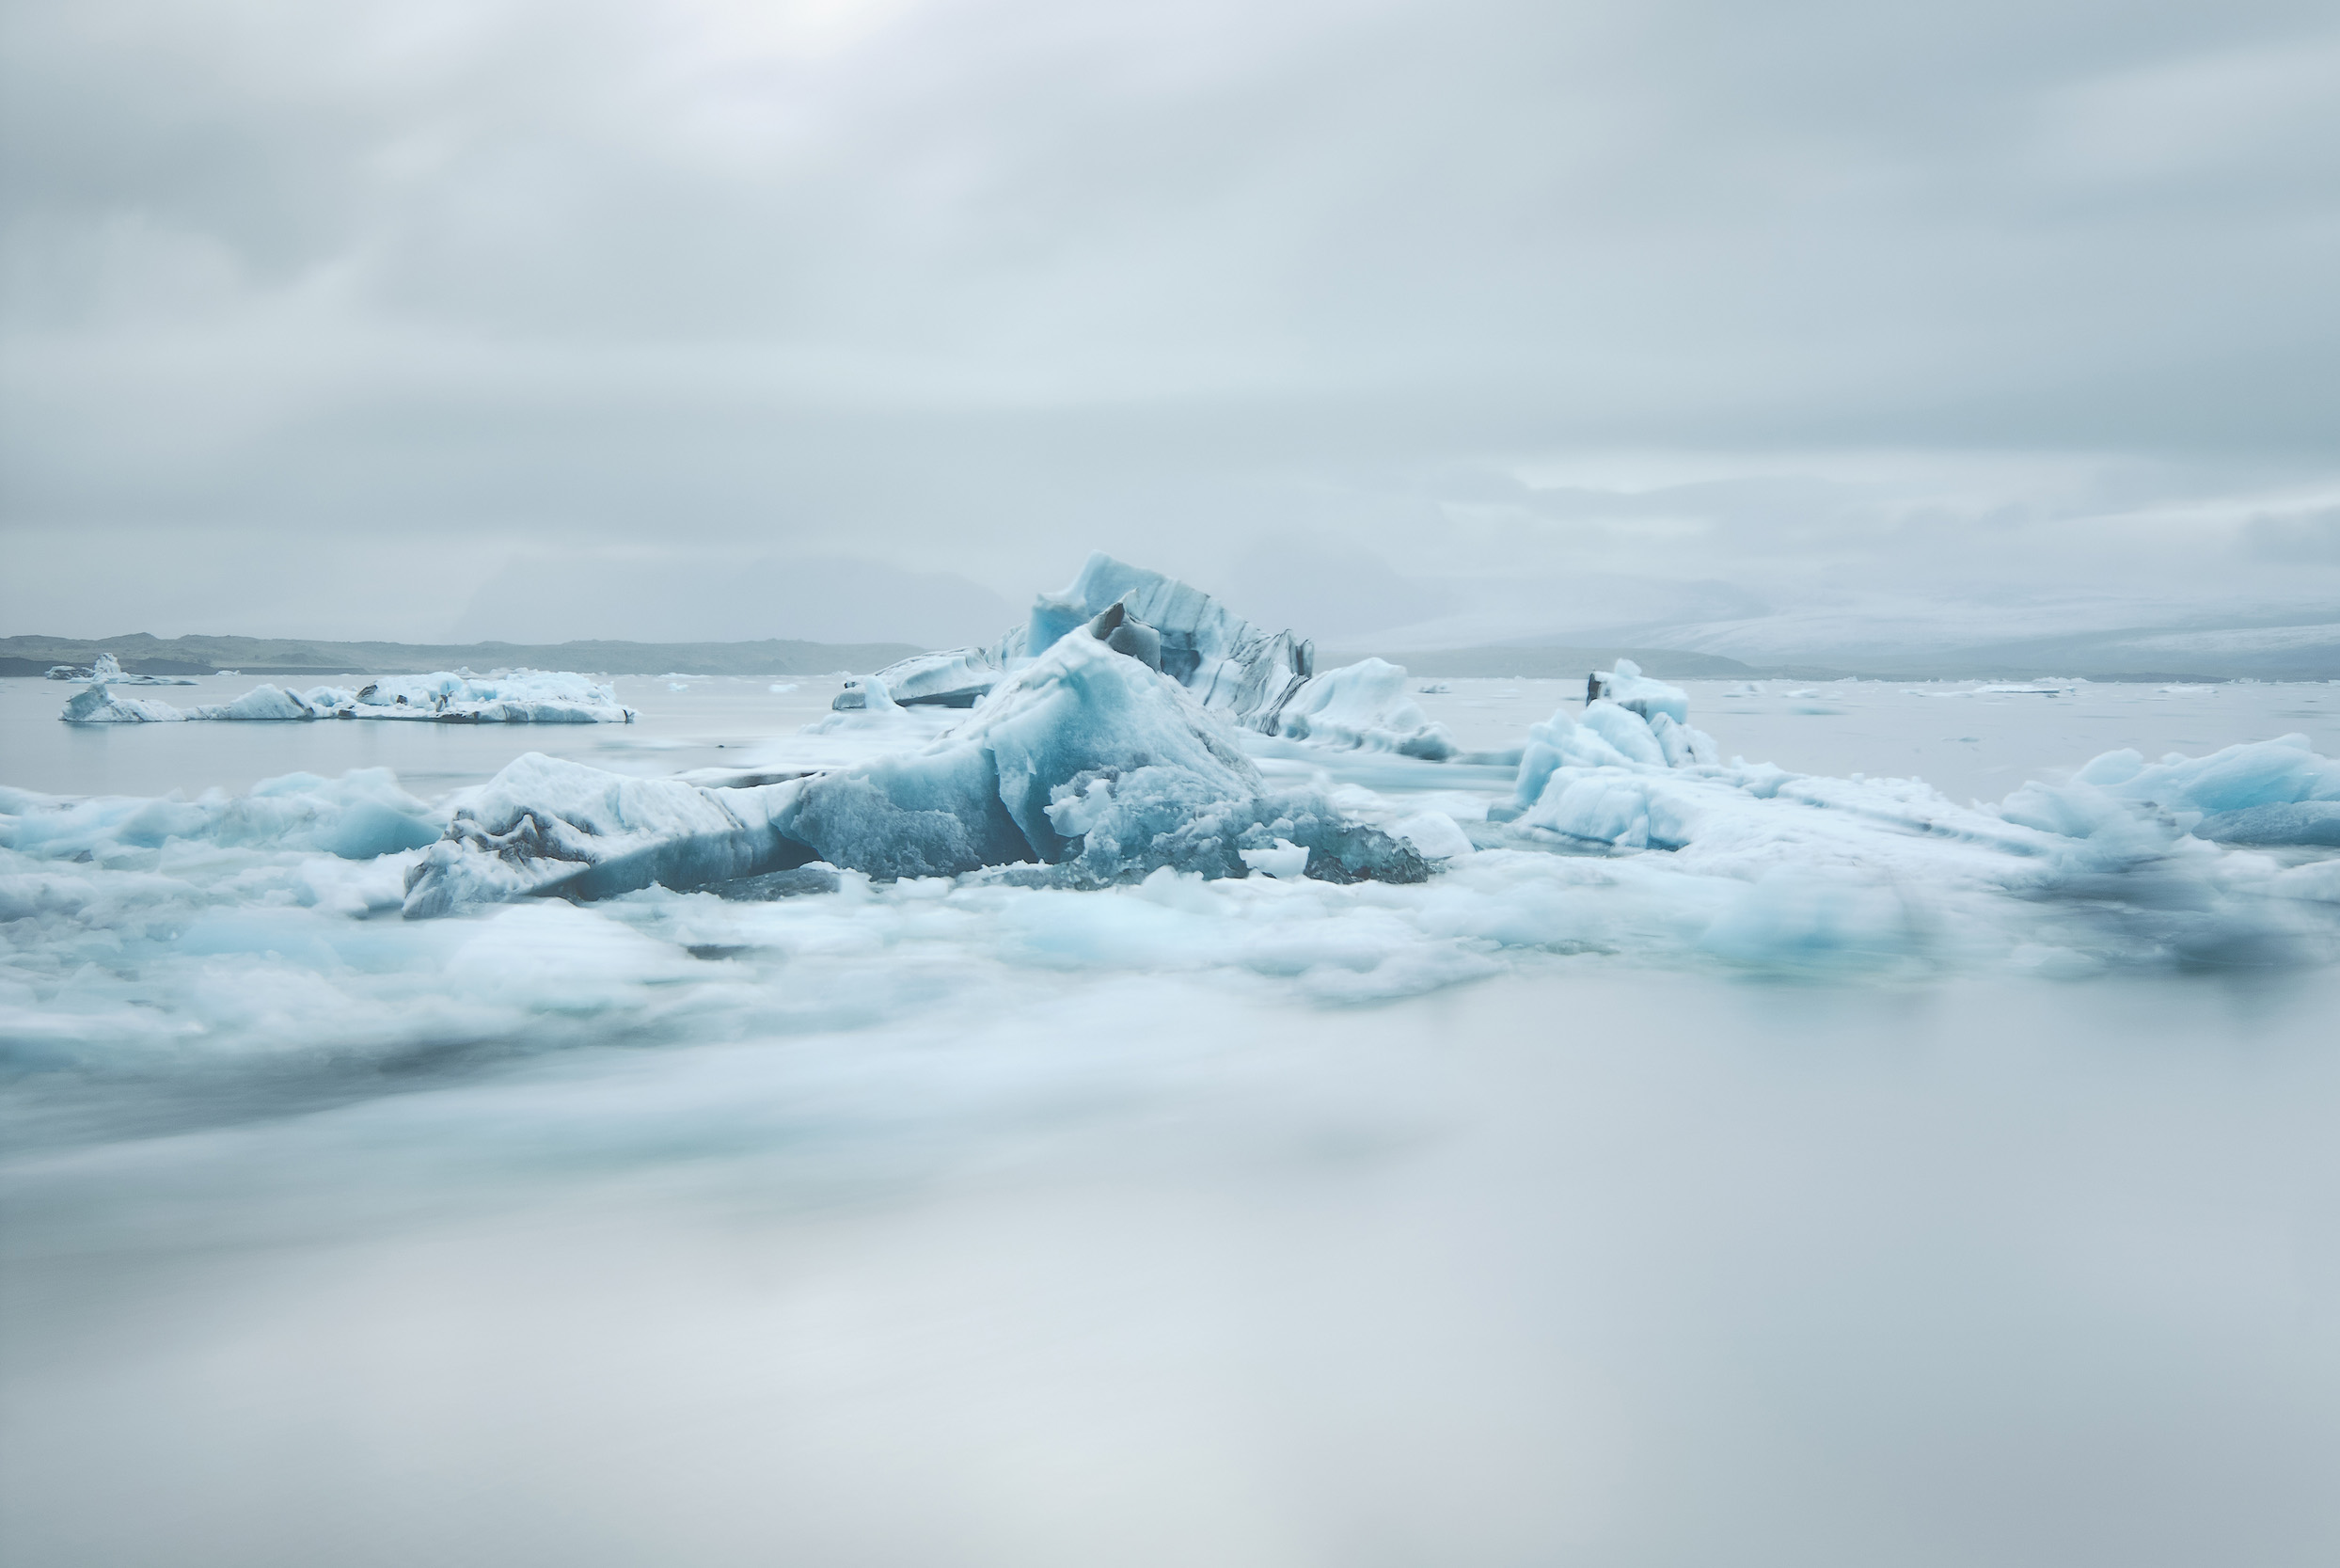 A long exposure blurs the smaller icebergs as the flow the the sea while the larger pieces remain caught on the bottom of the lagoon.